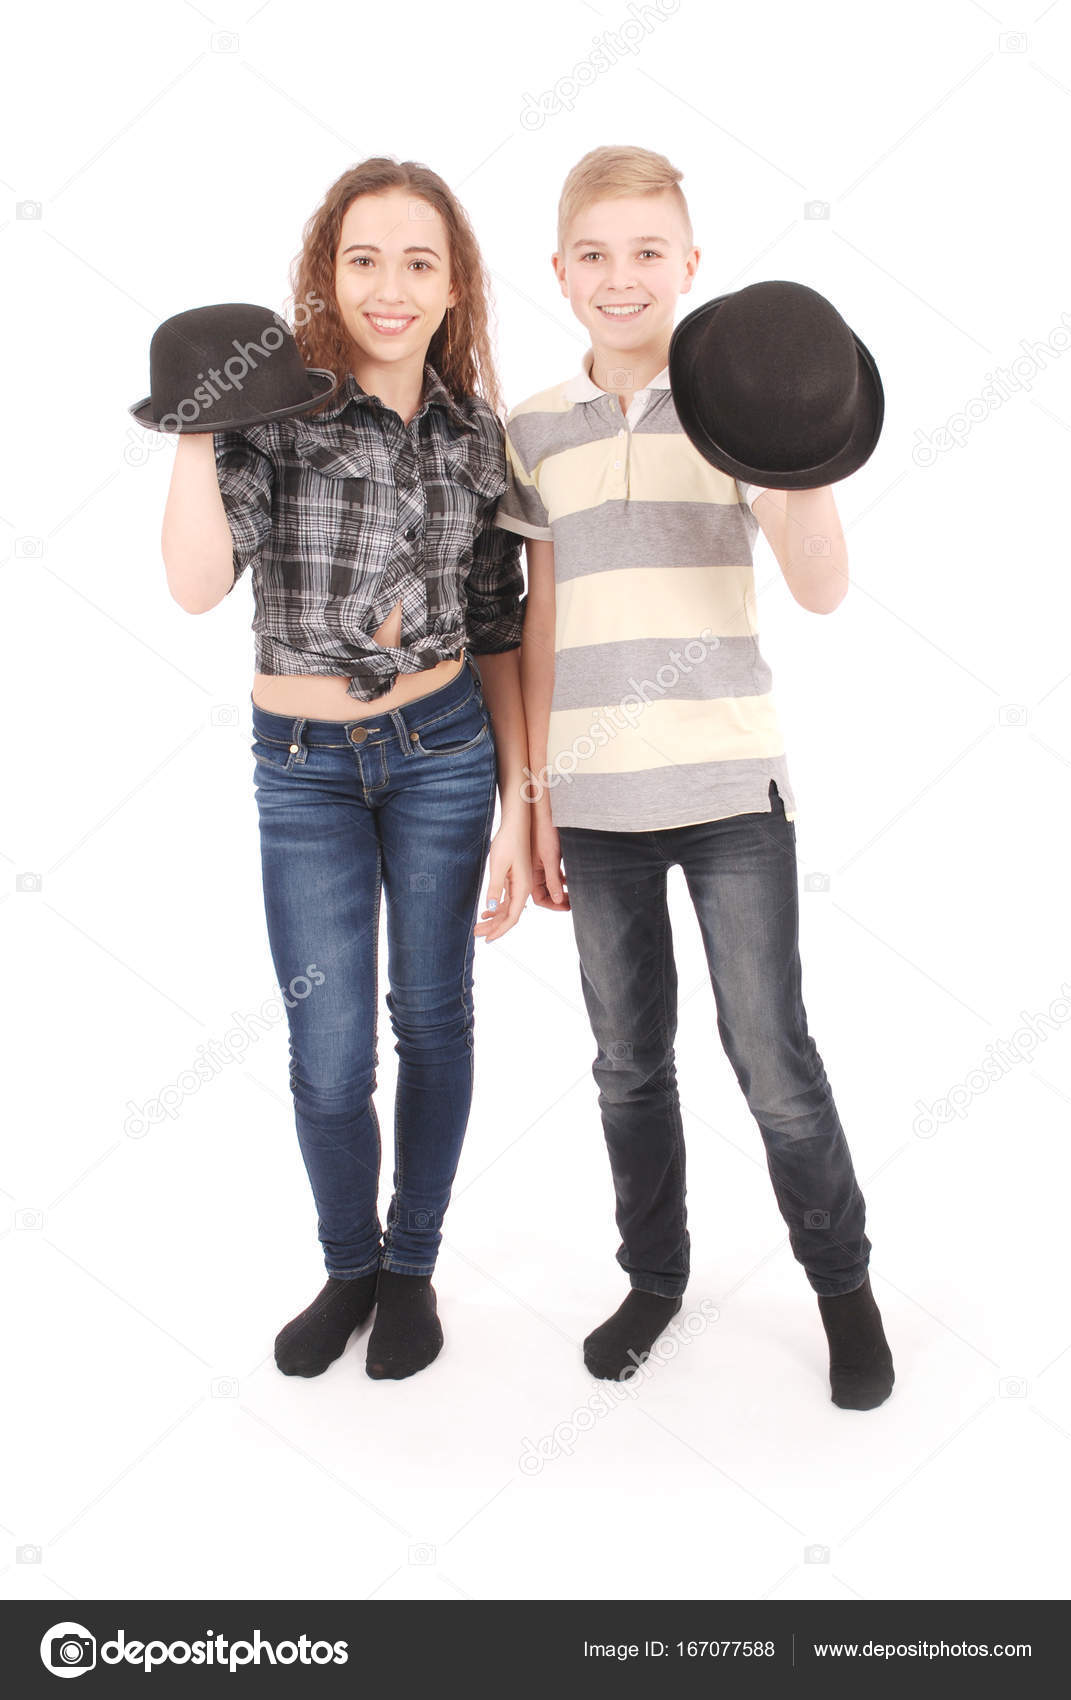 bb239e08a43 Portrait of young girl and boy posing in black bowler hat — Stock Photo